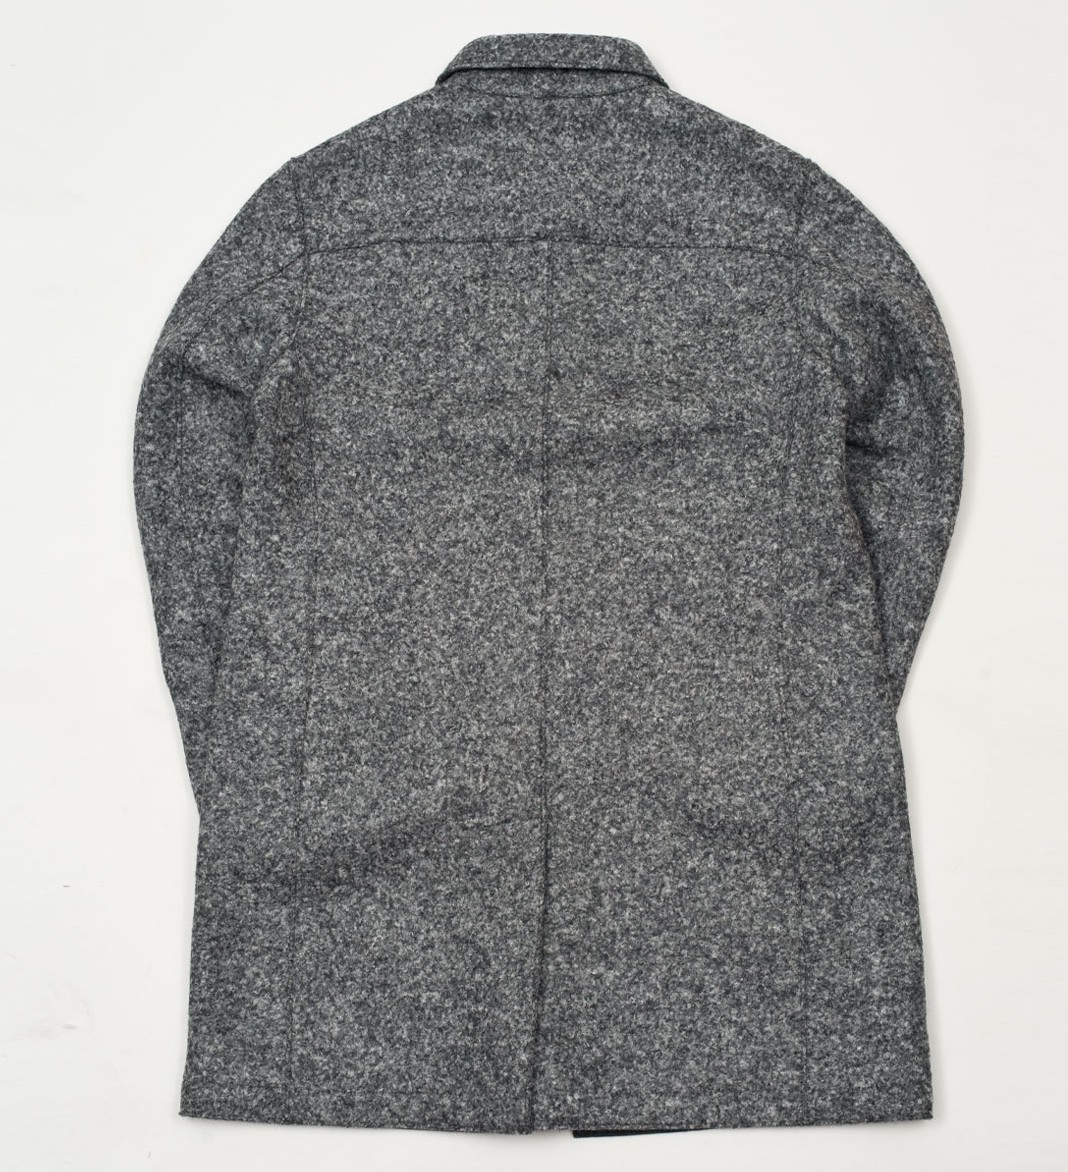 harris-wharf-grey-coat-d